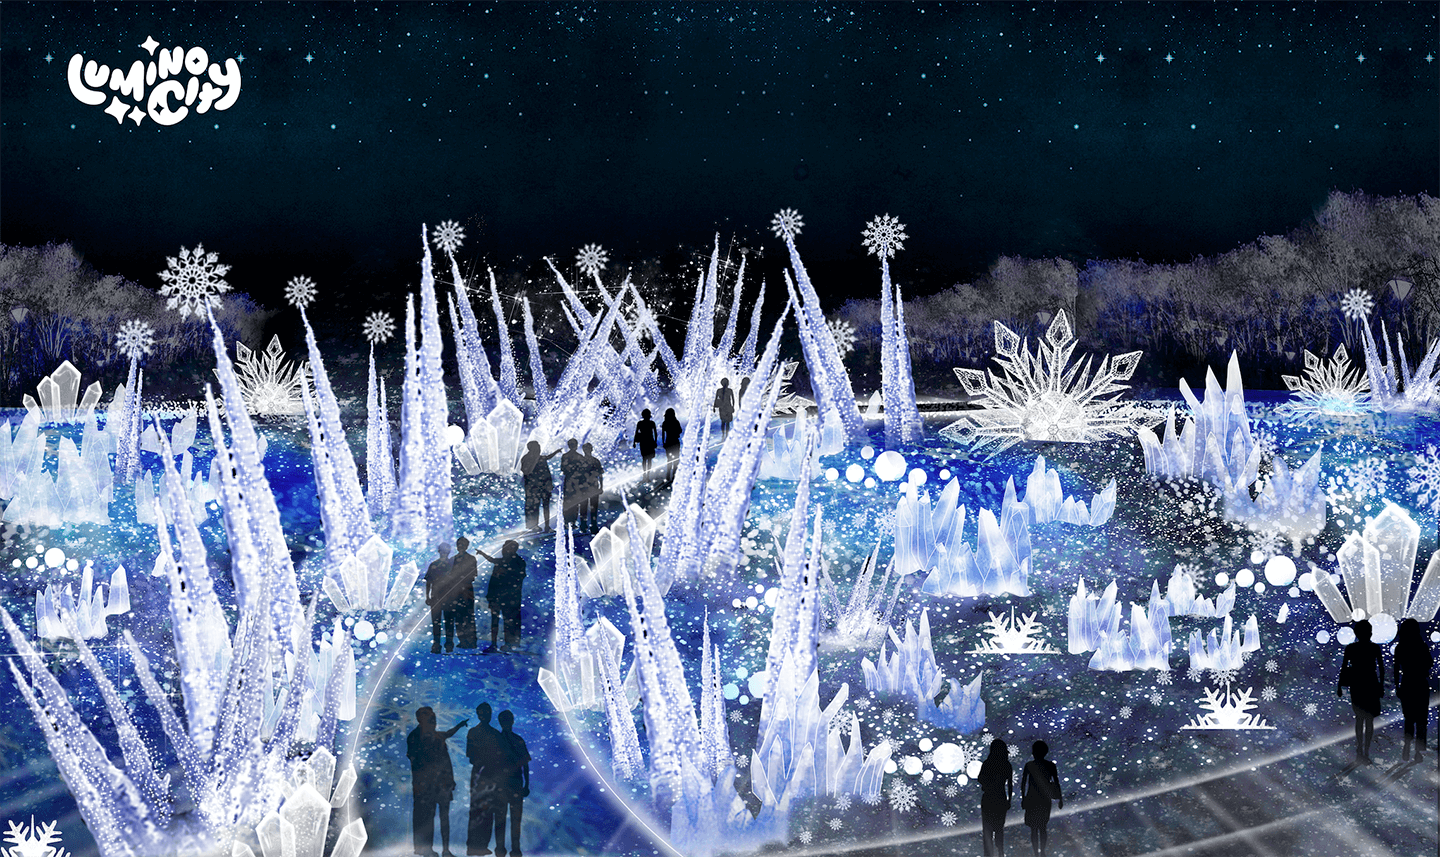 the-arctic-freeze-the-winter-fantasy-light-arts-luminocity-festival-rendered-image